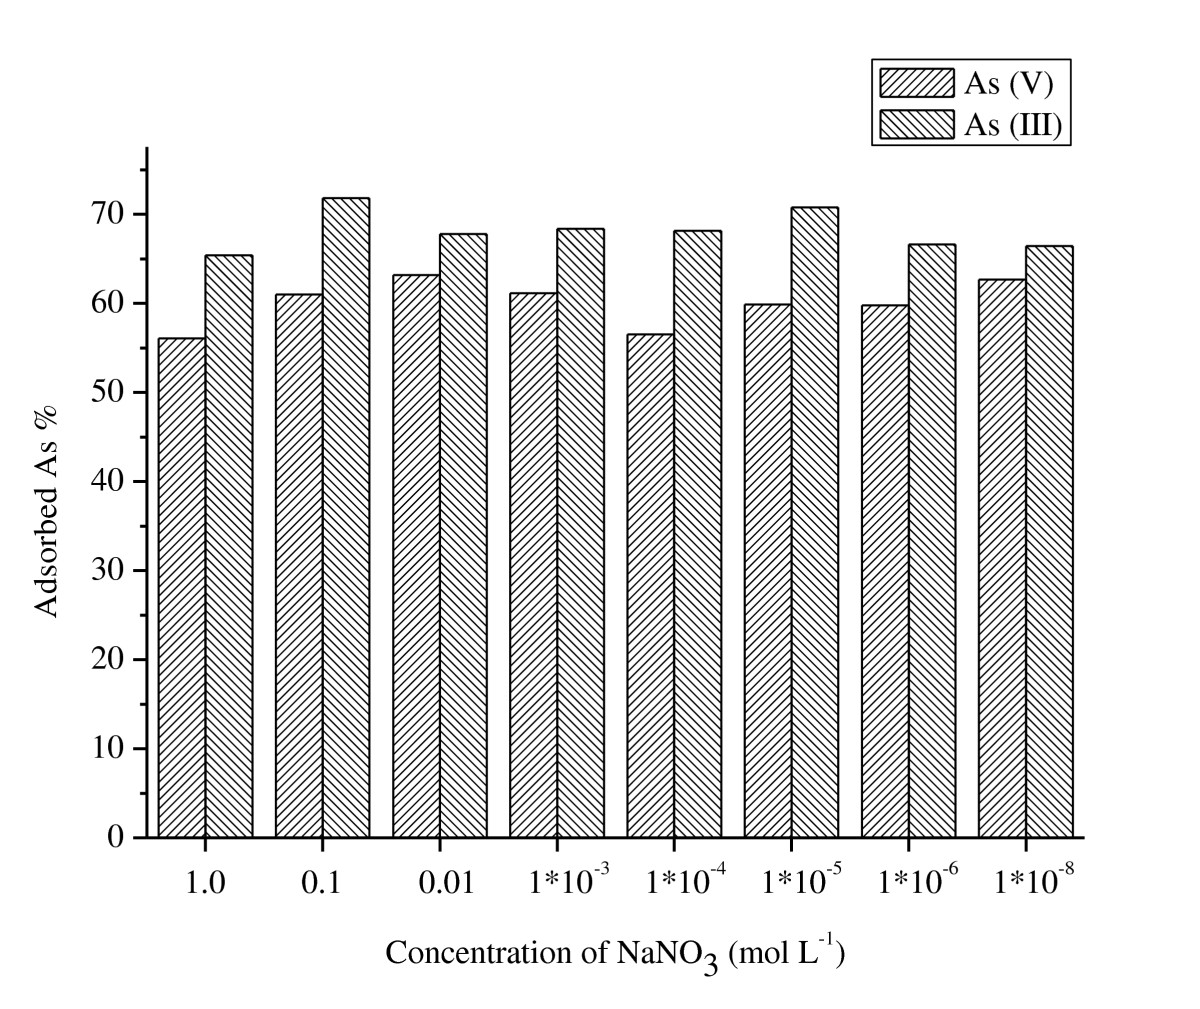 http://static-content.springer.com/image/art%3A10.1186%2F1556-276X-7-84/MediaObjects/11671_2011_Article_669_Fig4_HTML.jpg